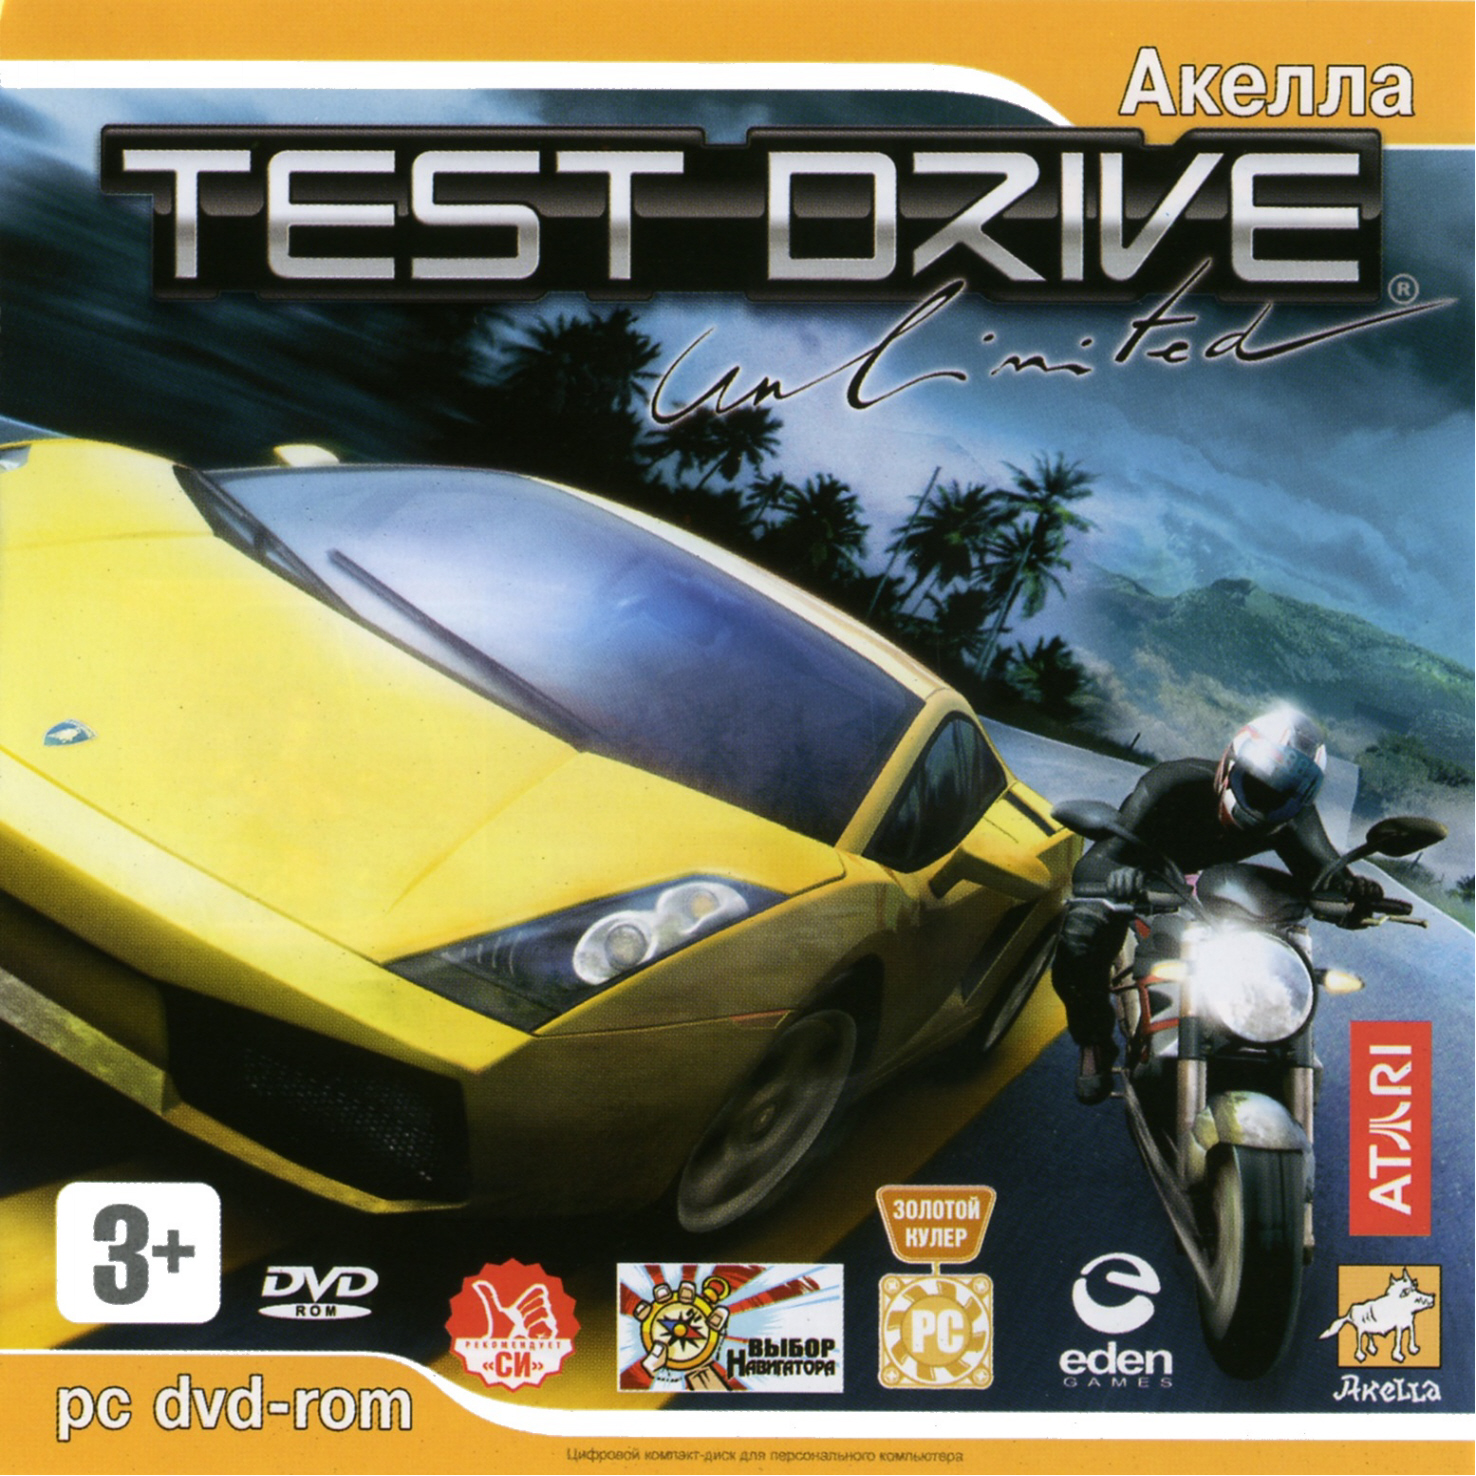 Test drive game porn nude muscle daughter